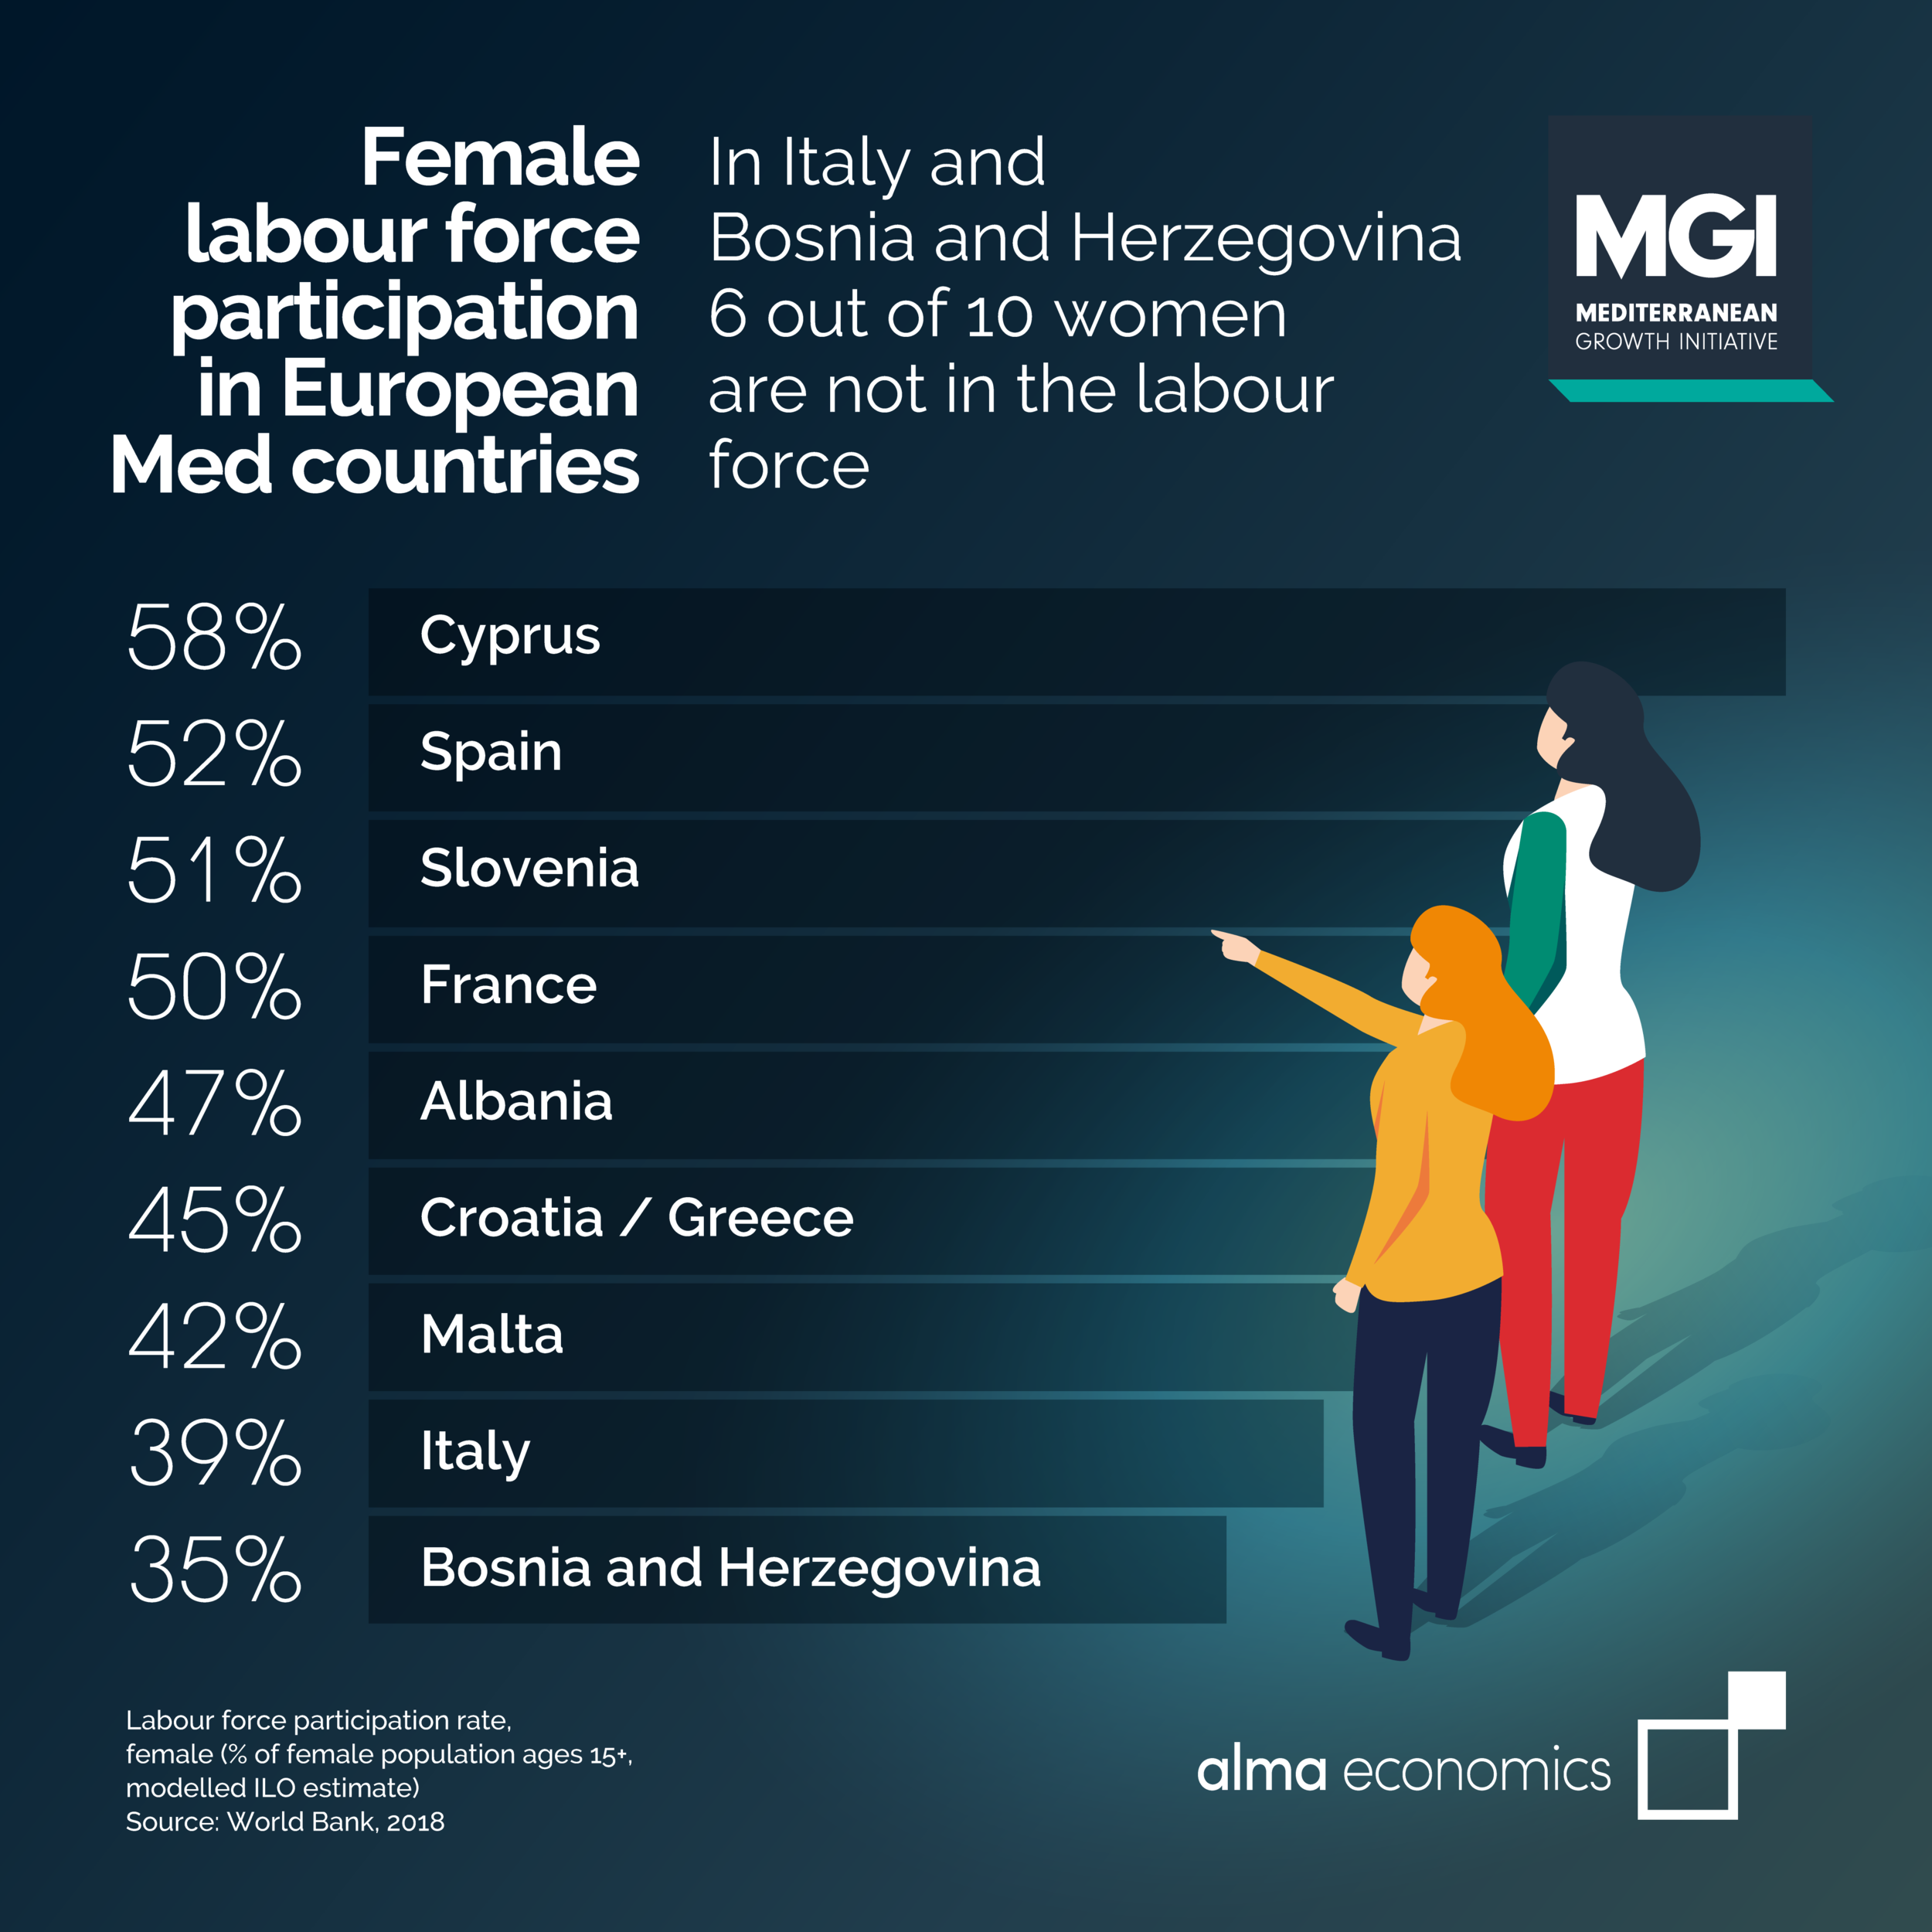 Female labour force participation in European Med countries - Amongst European Med countries, the participation of women in the labour market is lowest in Italy and Bosnia and Herzegovina